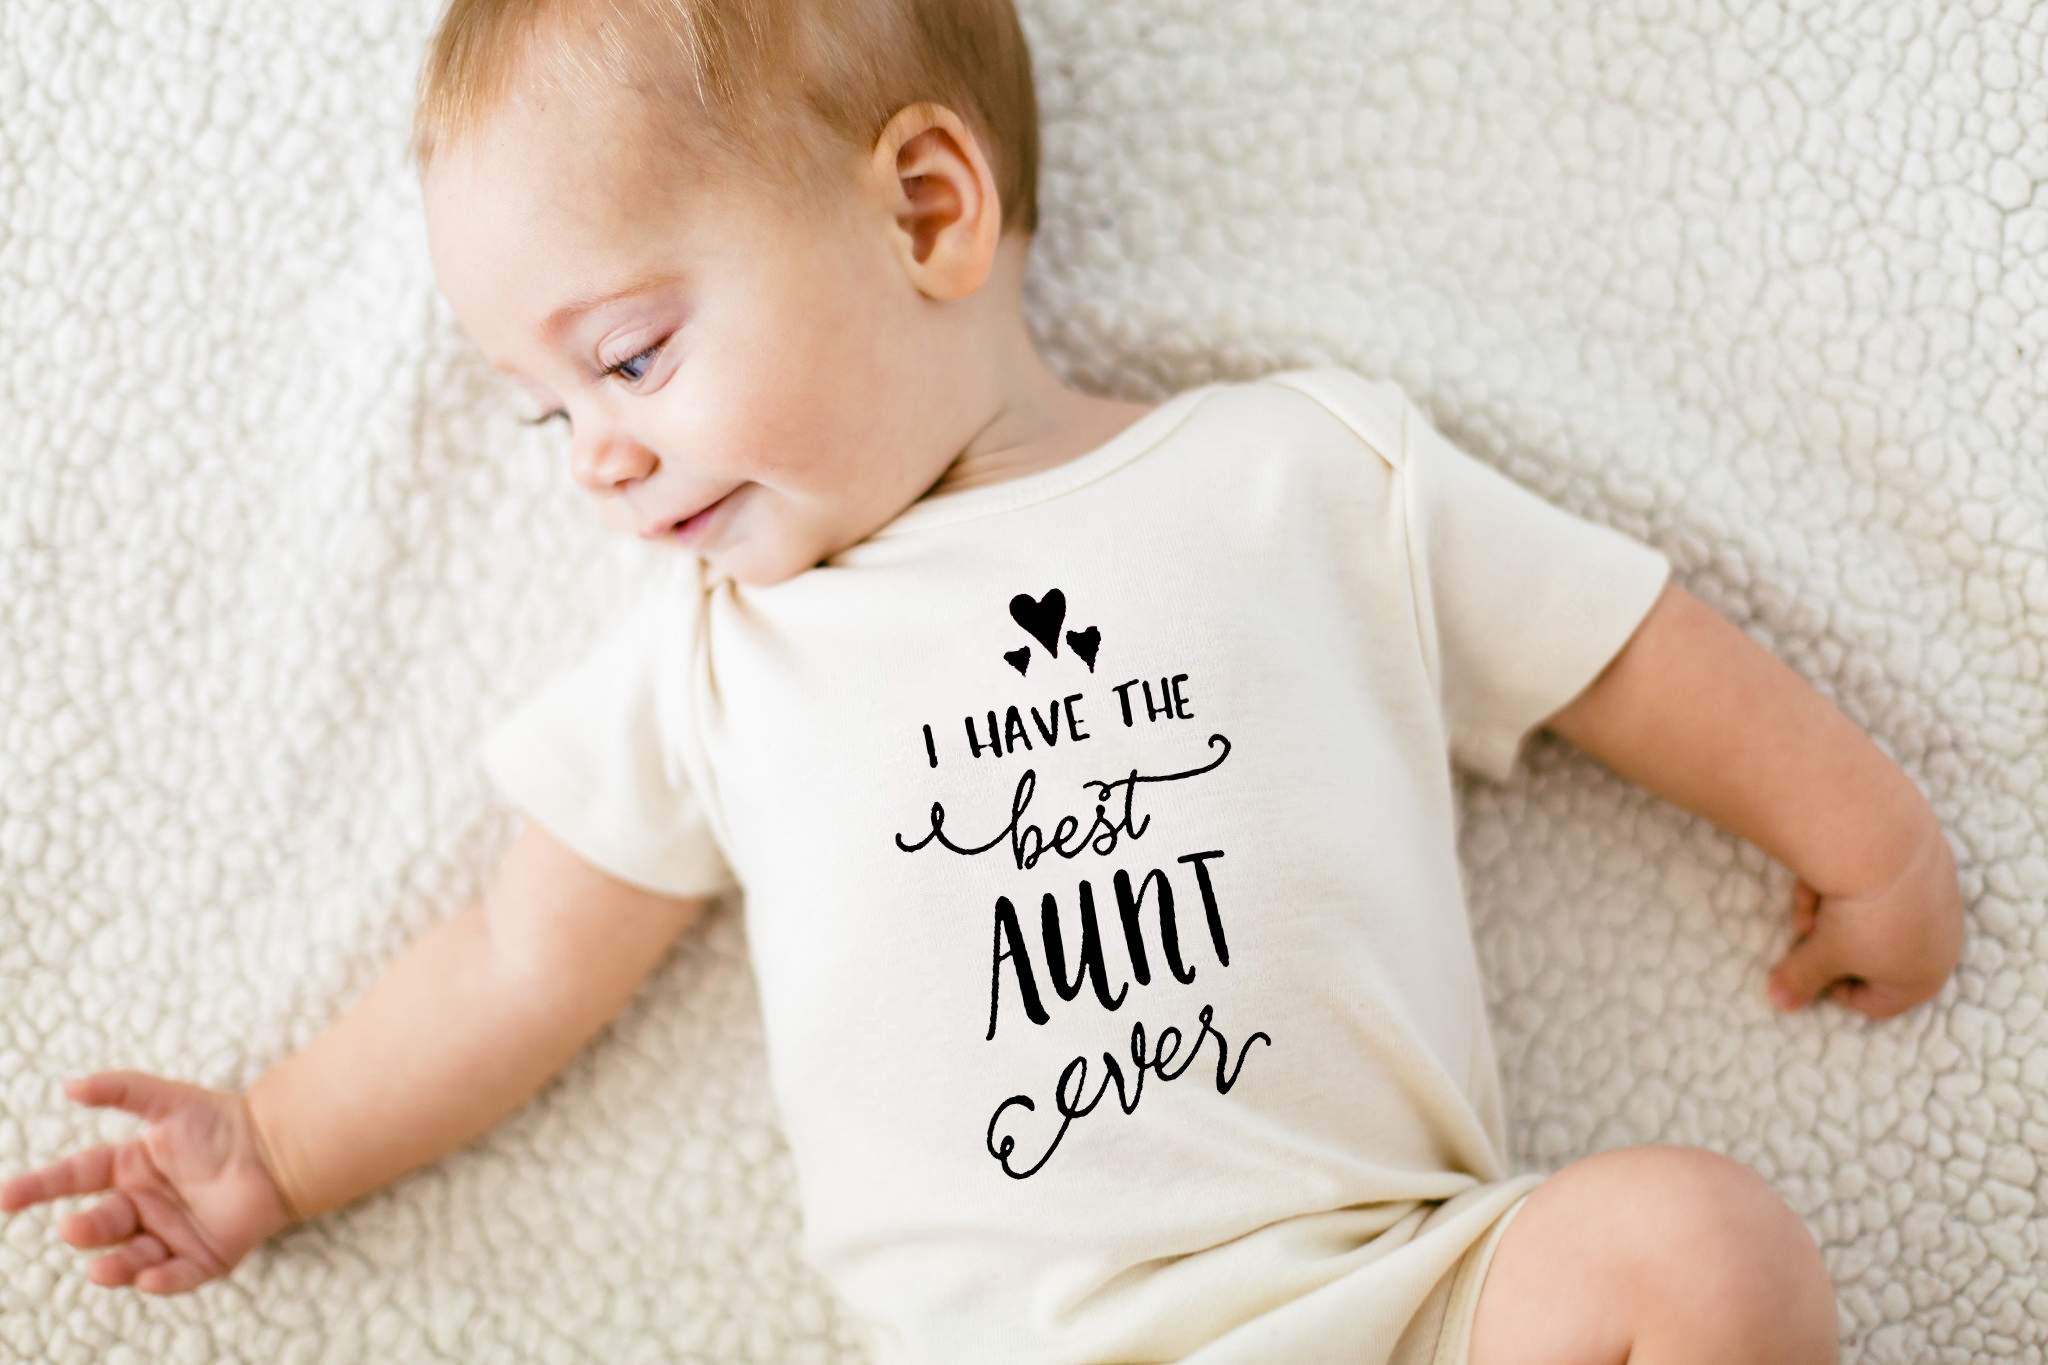 2020 New <font><b>Newborn</b></font> Infant <font><b>Baby</b></font> Girls Boys <font><b>Bodysuits</b></font> Best Aunt Print <font><b>Short</b></font> <font><b>Sleeve</b></font> White Playsuits Summer Clothes 0-24M image